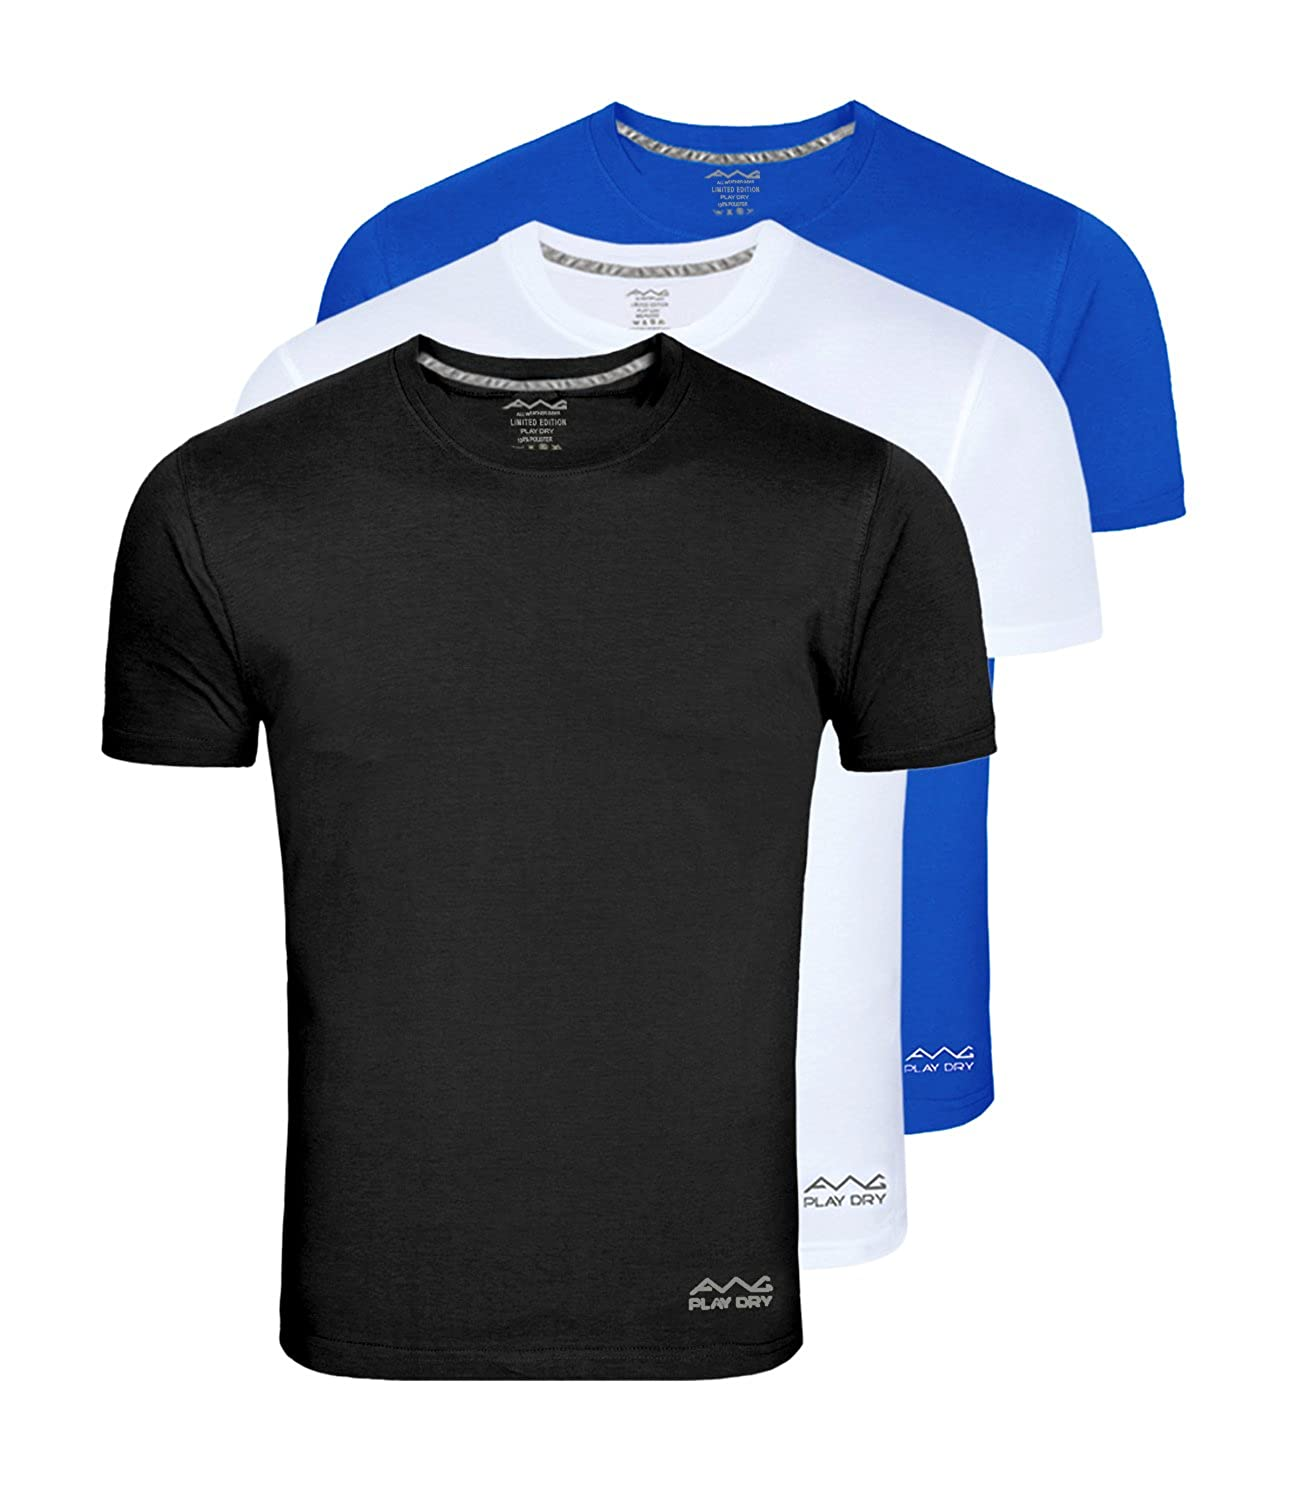 cd9ceabf150 AWG - All Weather Gear Men s Polyester T-Shirt (Pack Of 3)  (Awgdft-Bl-Wh-Rb)  Amazon.in  Clothing   Accessories